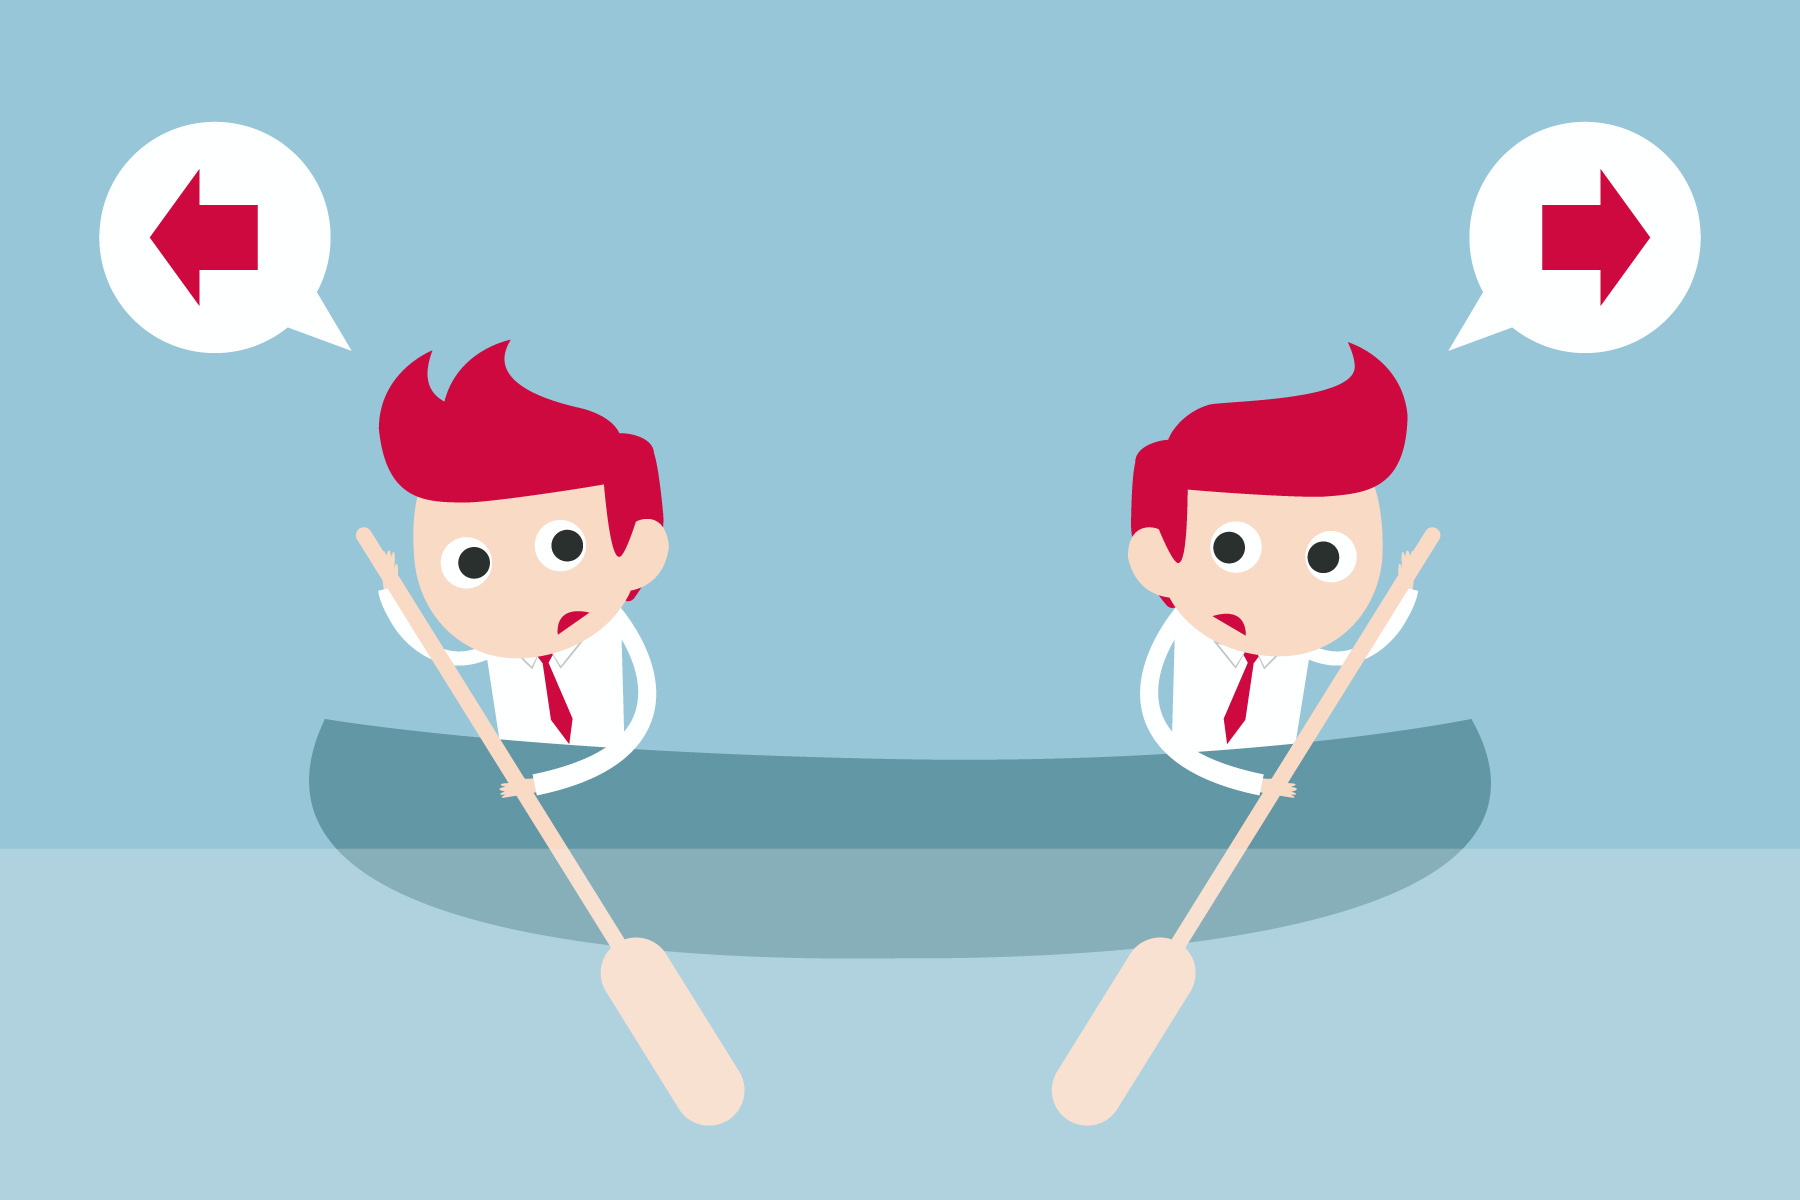 graphic of two men in the same boat pulling in different directions to show the dilemma between Product Training versus Sales Training